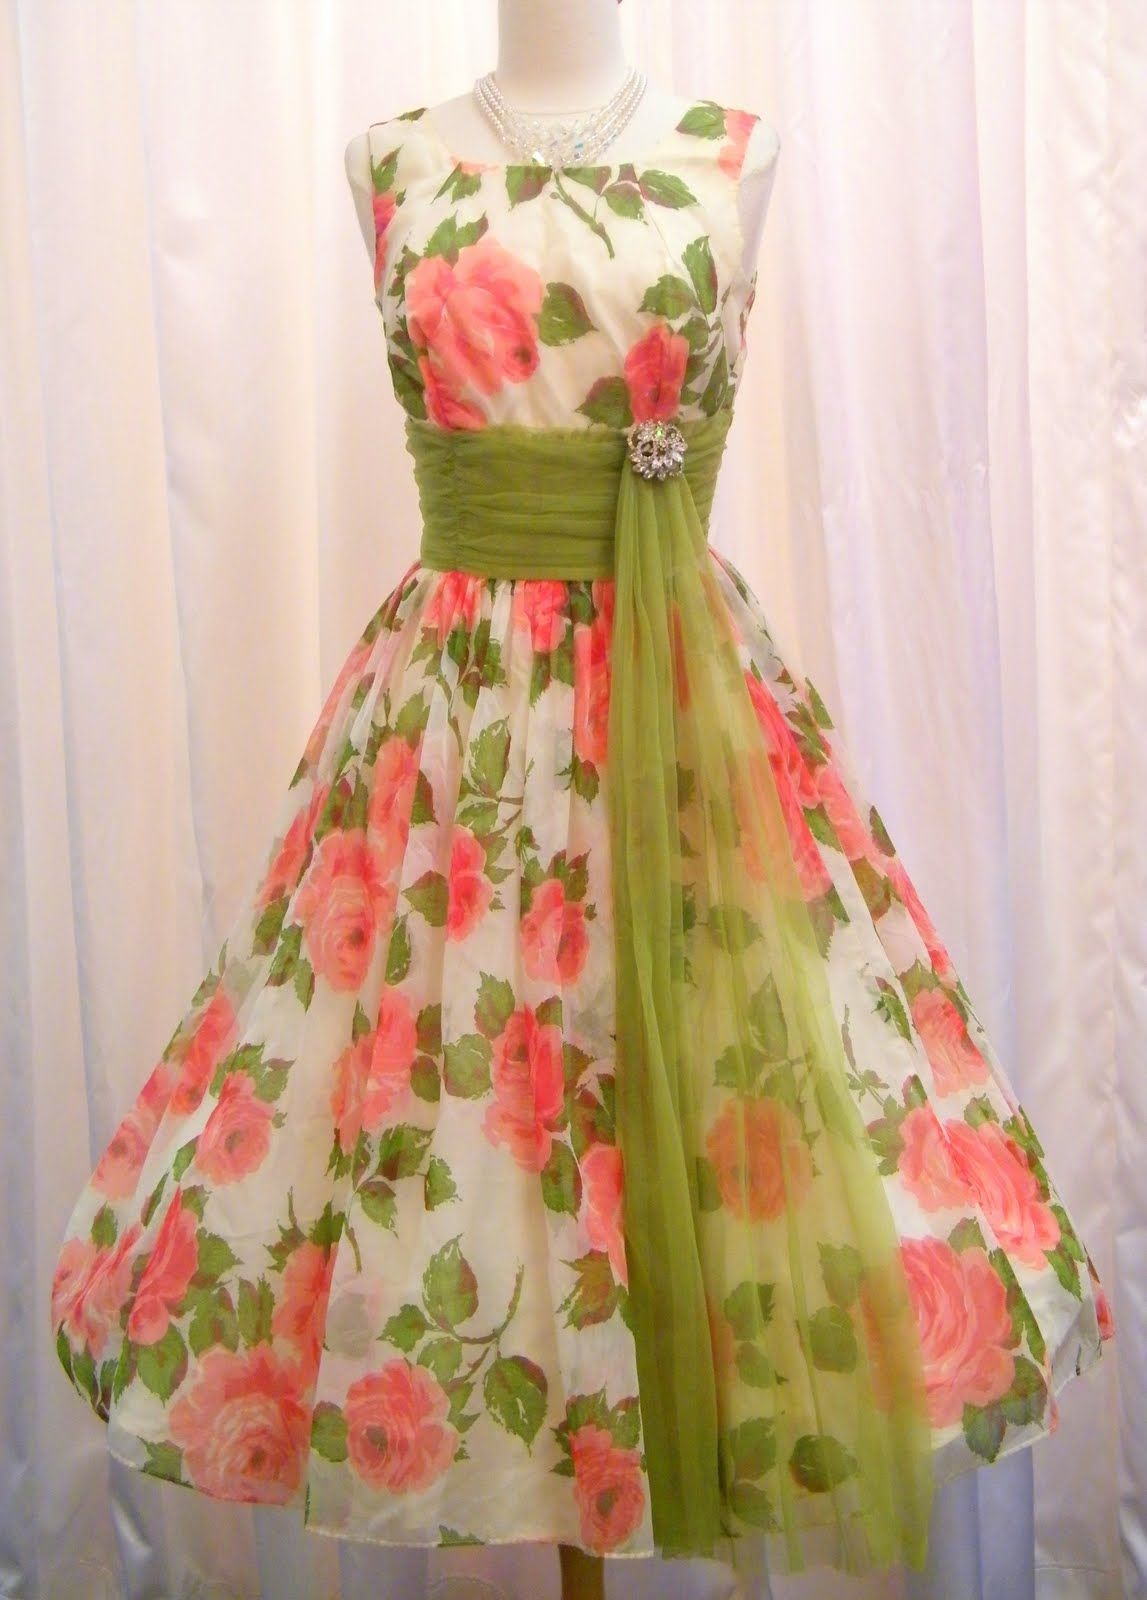 Pink & Green floral chiffon prom dress with sash. Love the colors ...